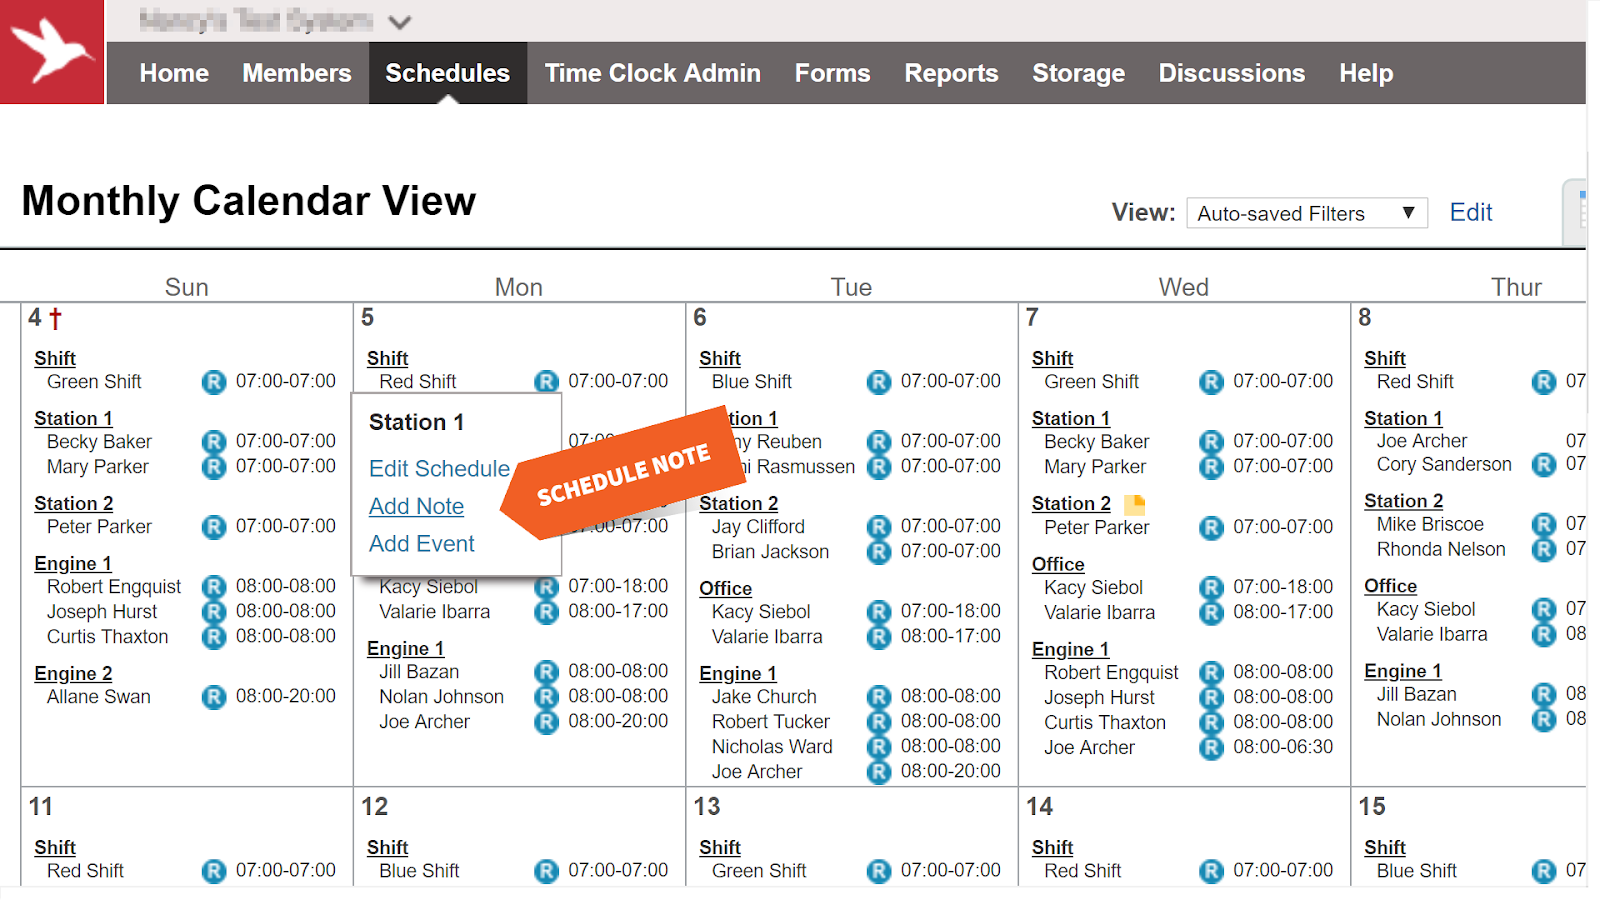 Add Schedule Note in the Monthly Calendar View